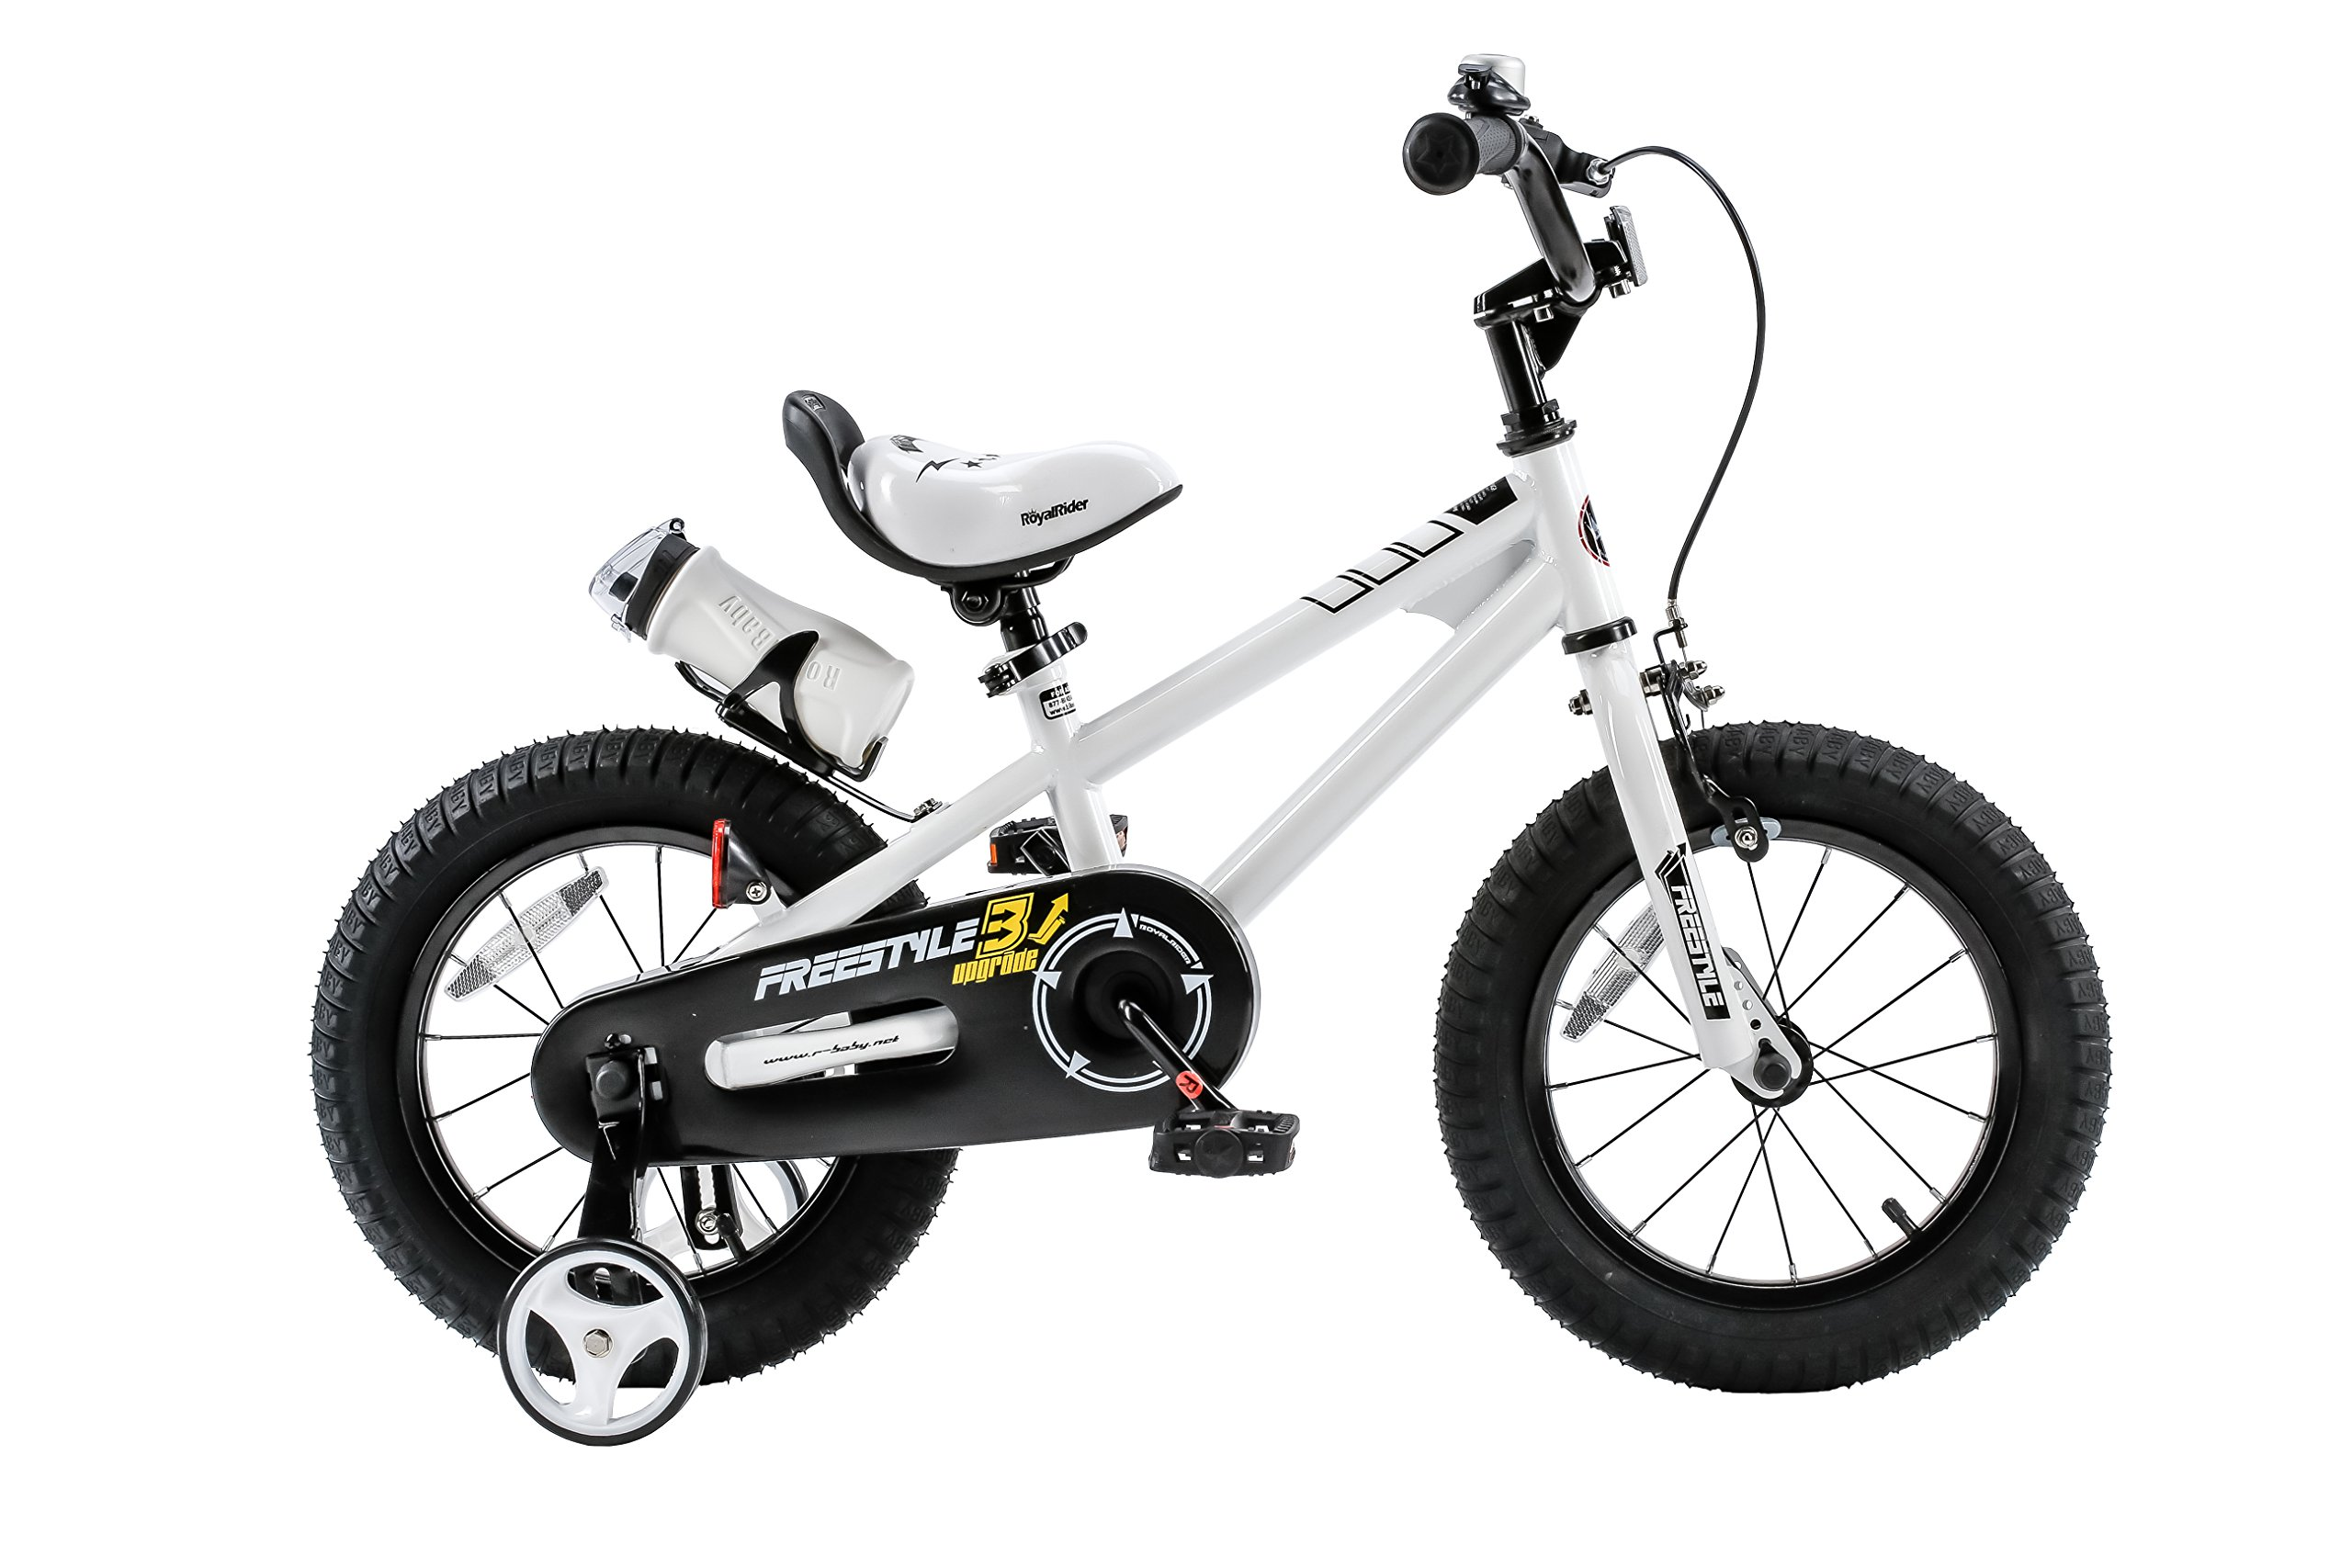 Royalbaby Freestyle Kid's Bike, 16 inch with Training Wheels and Kickstand, White, Gift for Boys and Girls